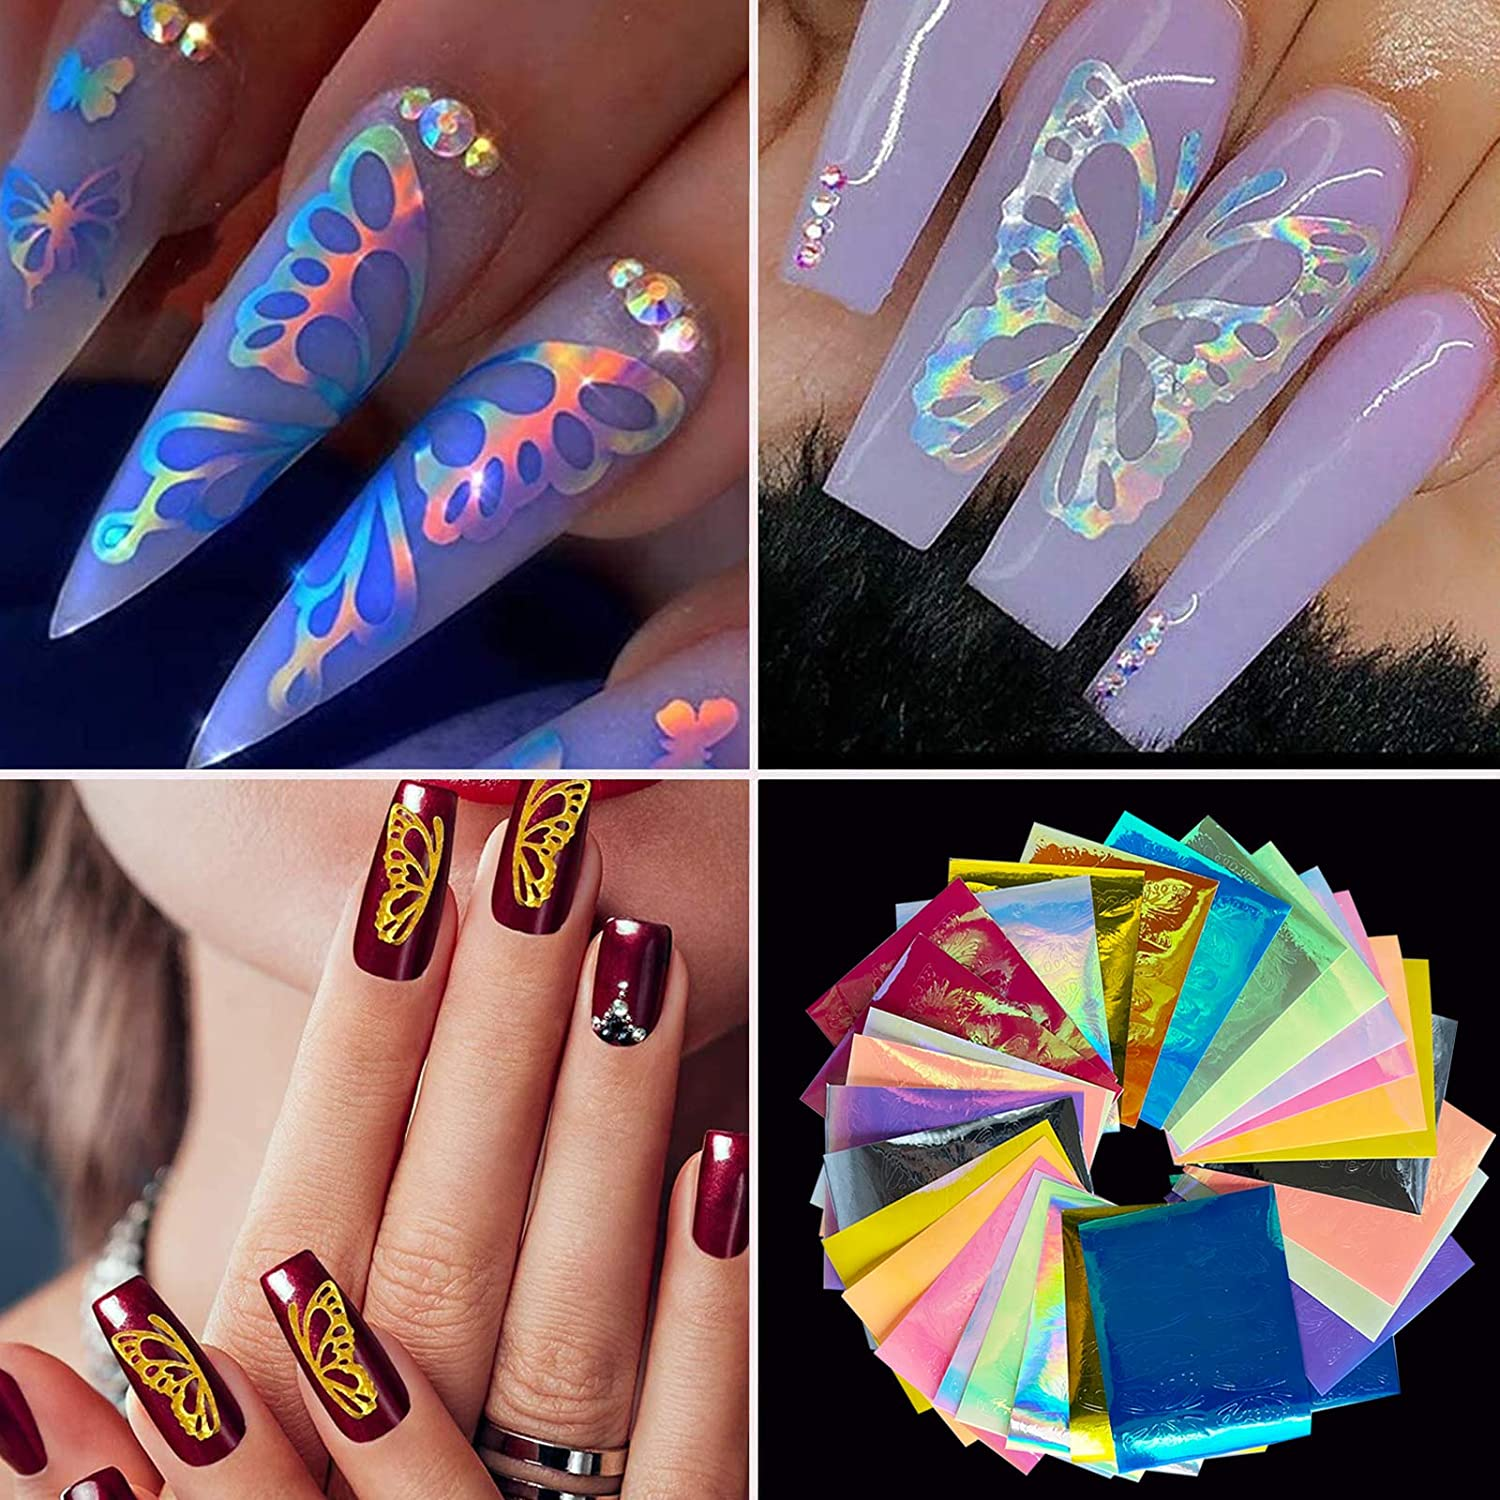 32PCS Butterfly Reflections Nail Stickers - Holographic Butterfly Nail Art Decals 3D Vinyls Nail Stencil for Nails Manicure Tape Adhesive Foils DIY Decoration